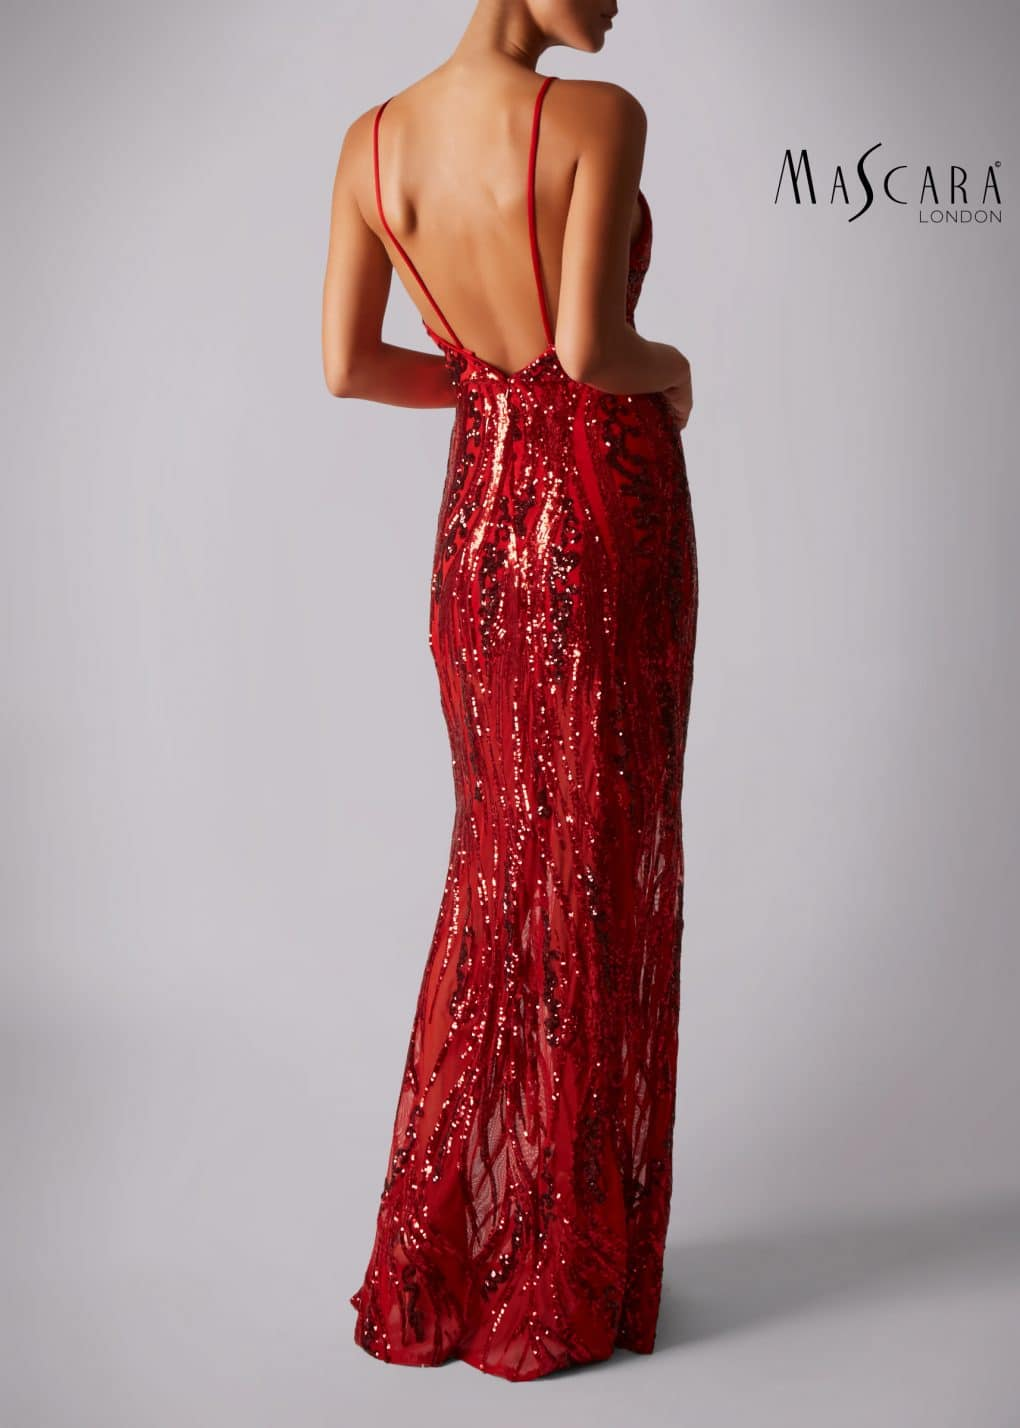 Mascara Spaghetti Sequins Red Dress